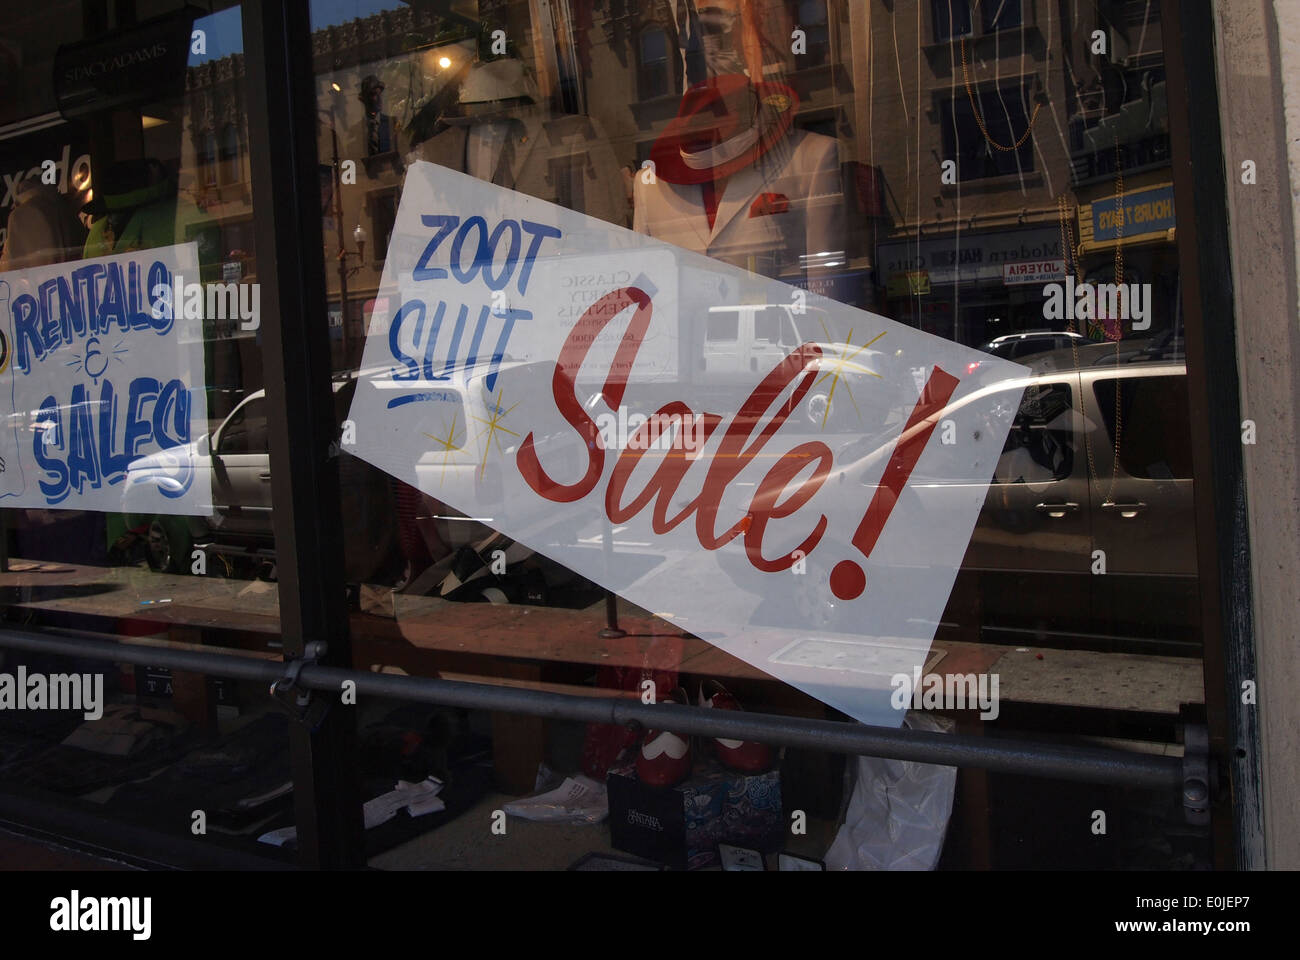 zoot suit sale sign store window Mission Street San Francisco California - Stock Image